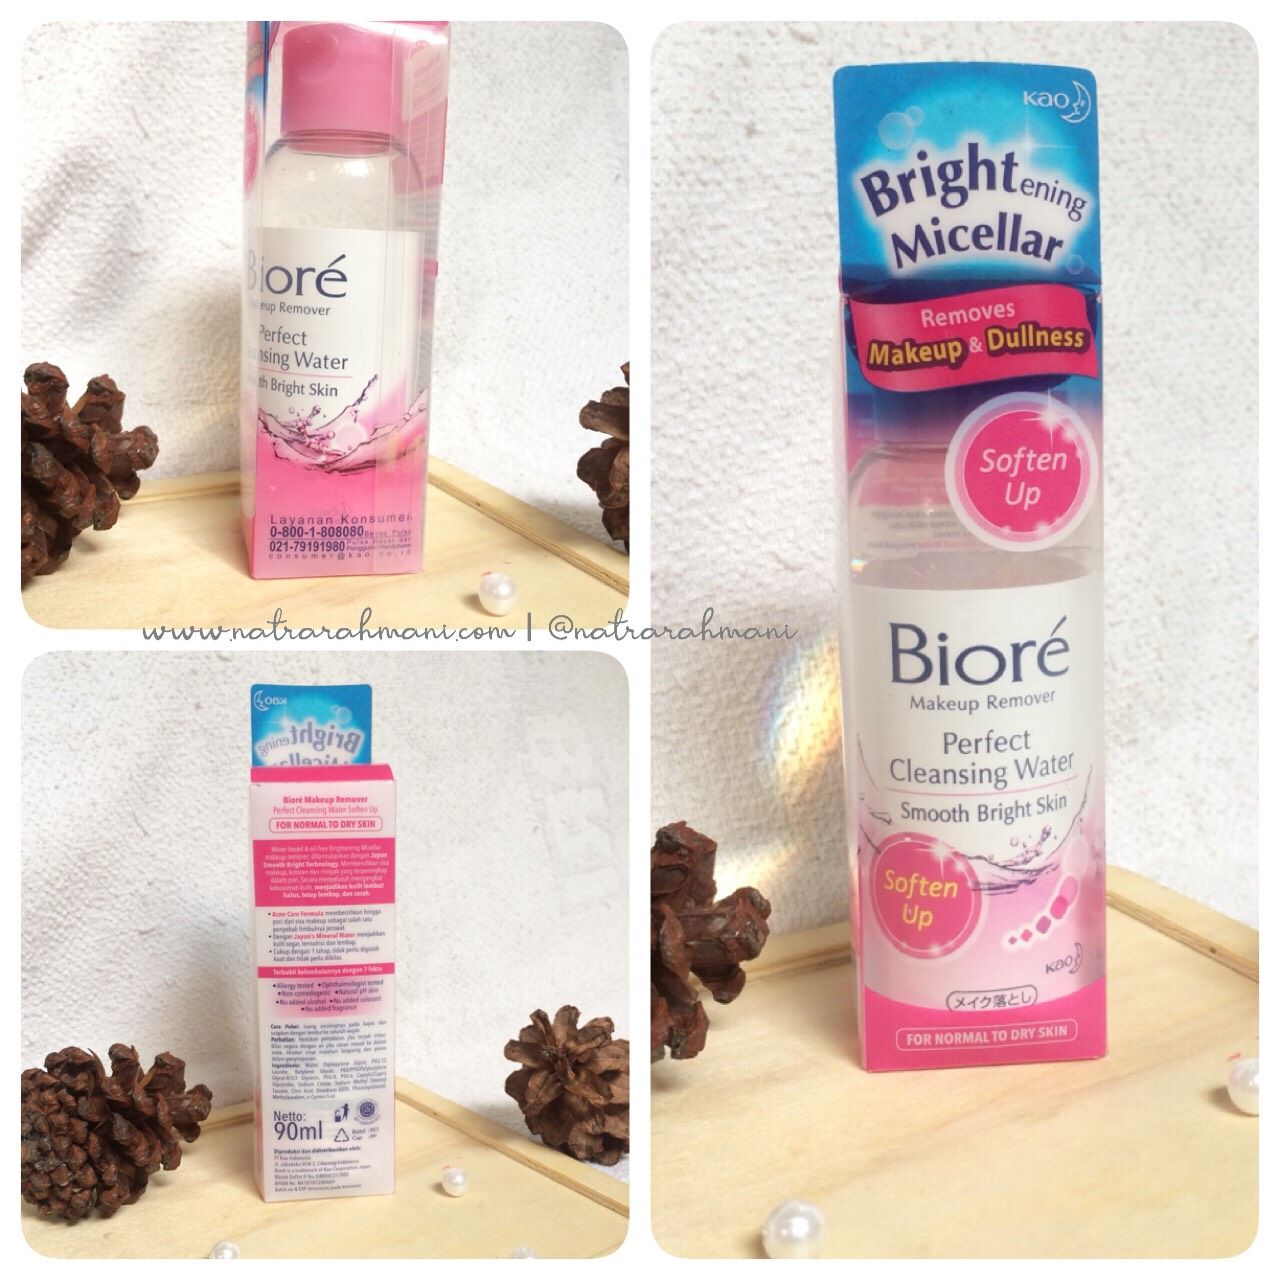 review-biore-perfect-cleansing-water-soften-up-natrarahmani